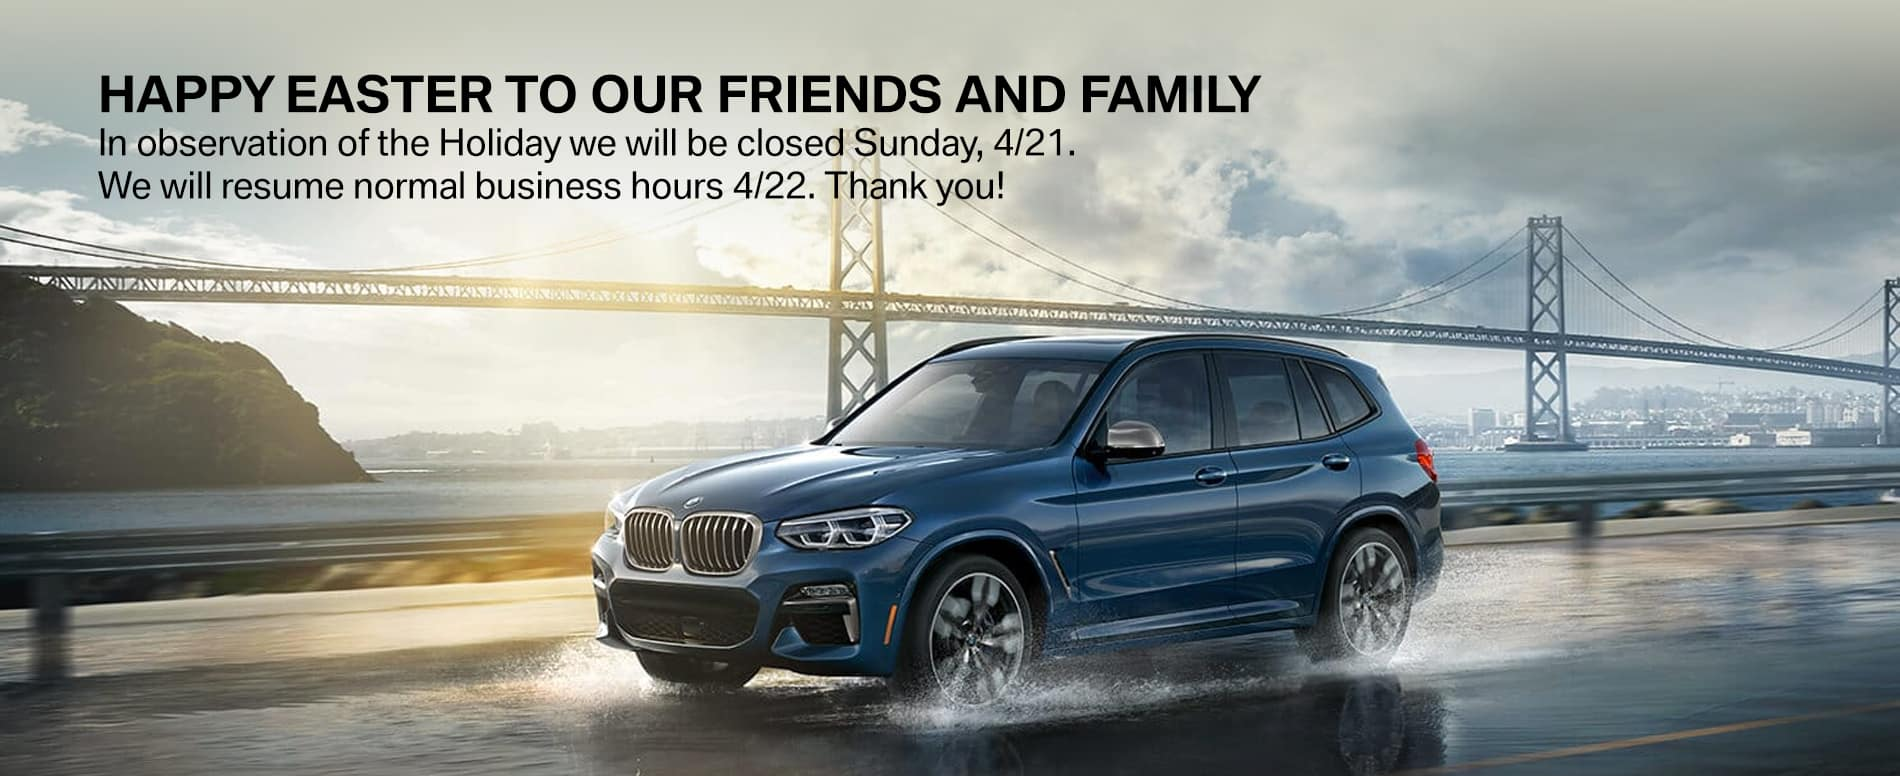 east bay bmw easter hours